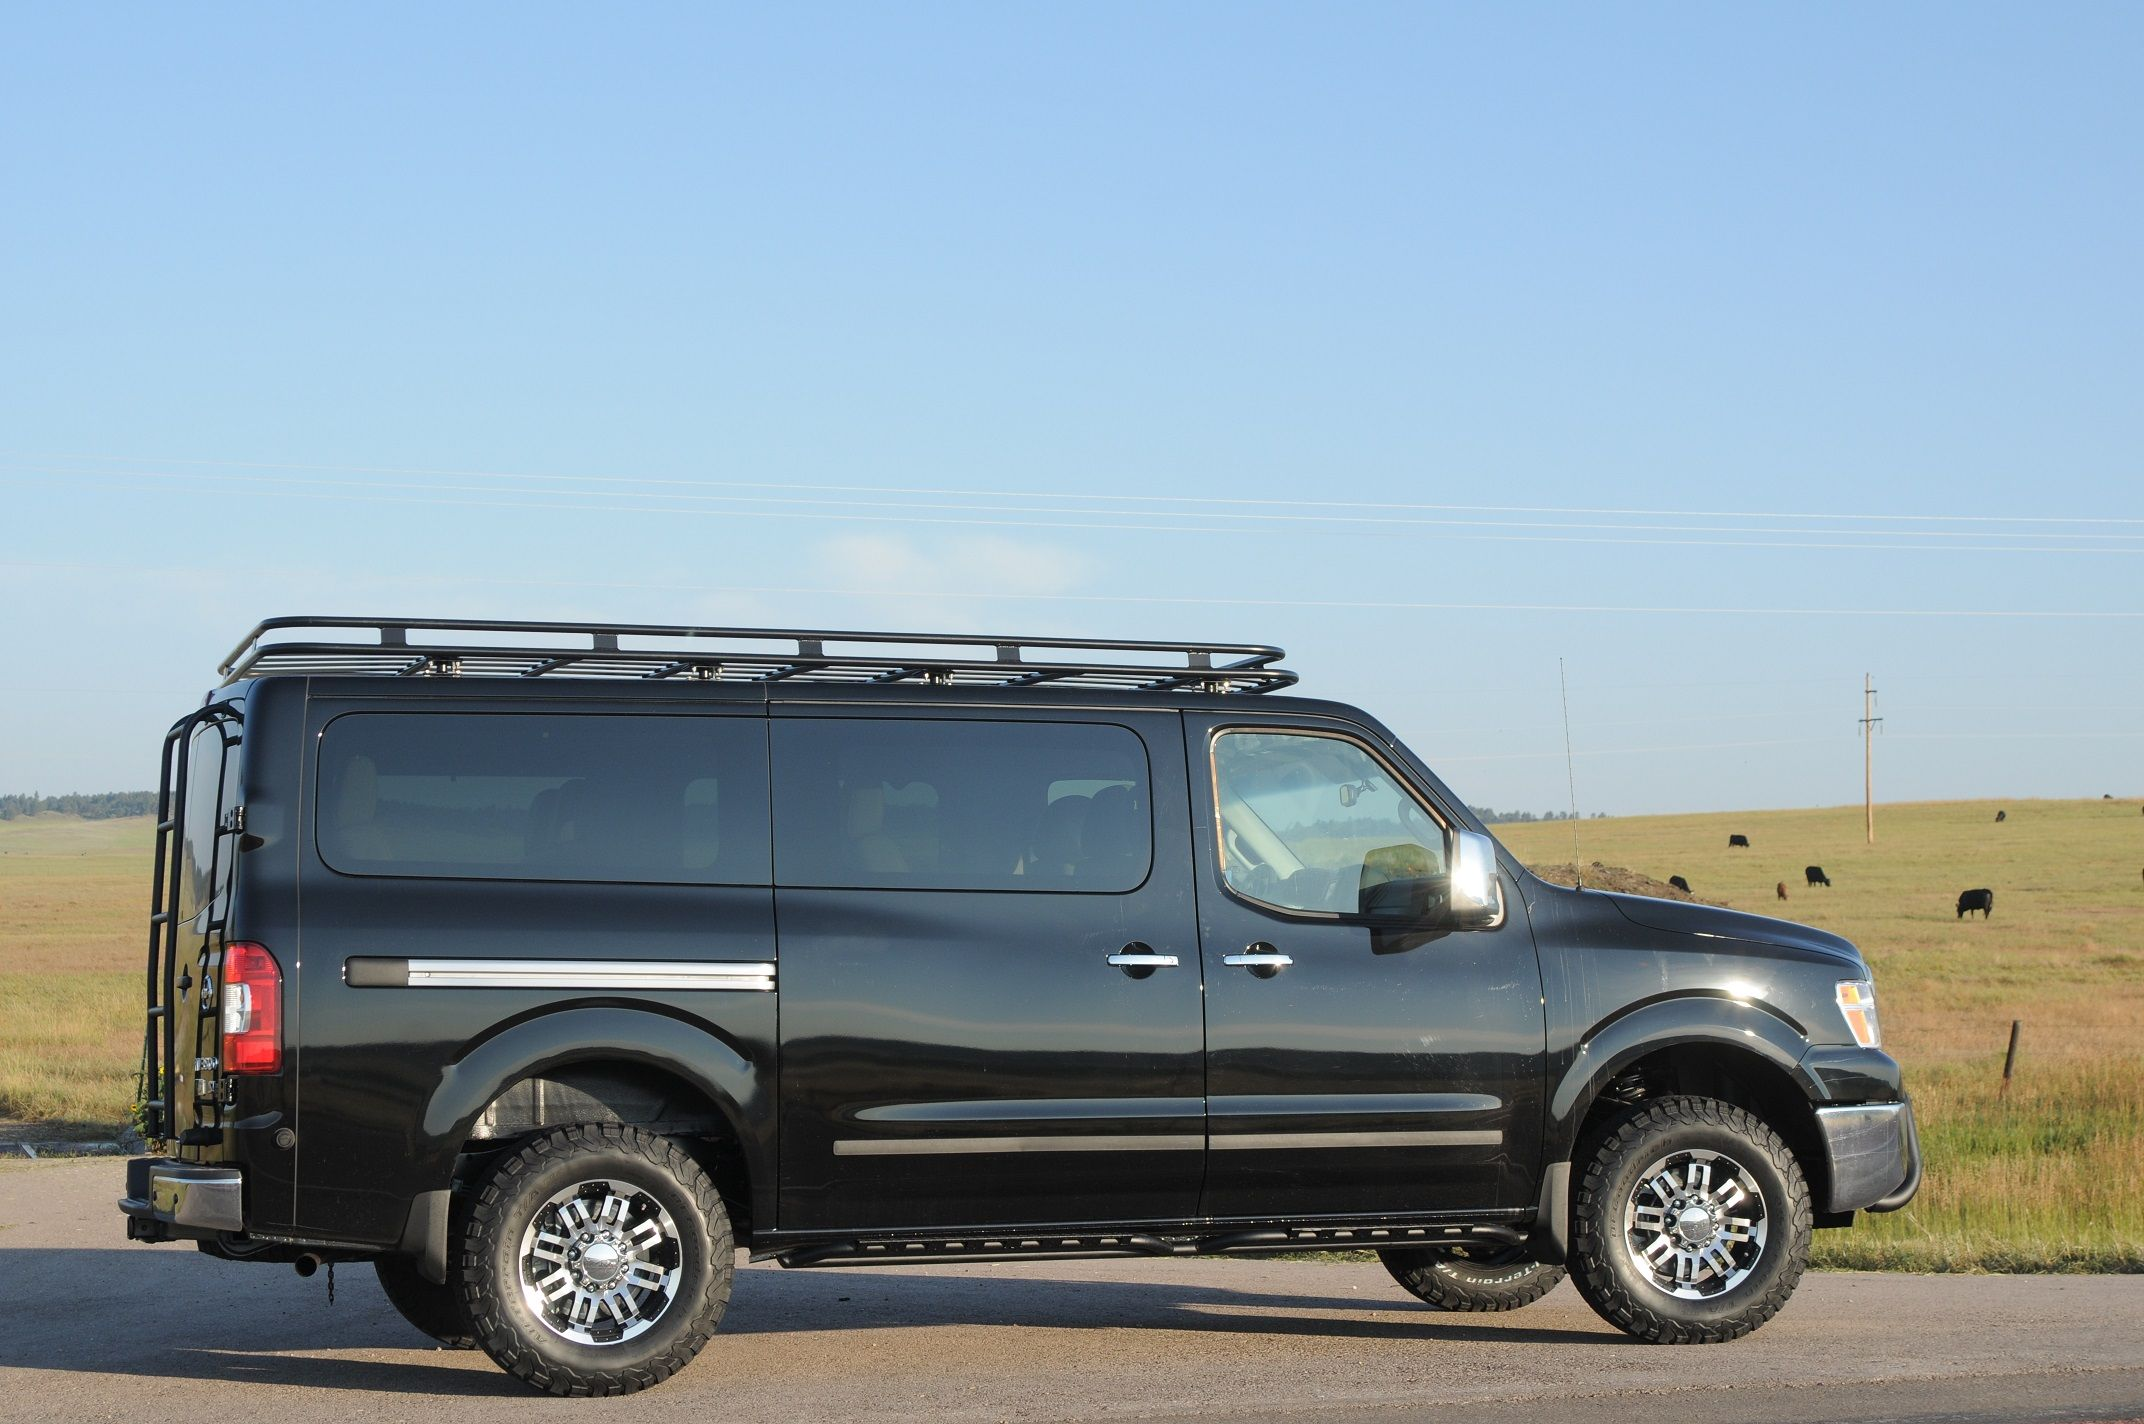 Nissan Nv 3500 4x4 Installed By Advanced Four Wheel Drive Systems